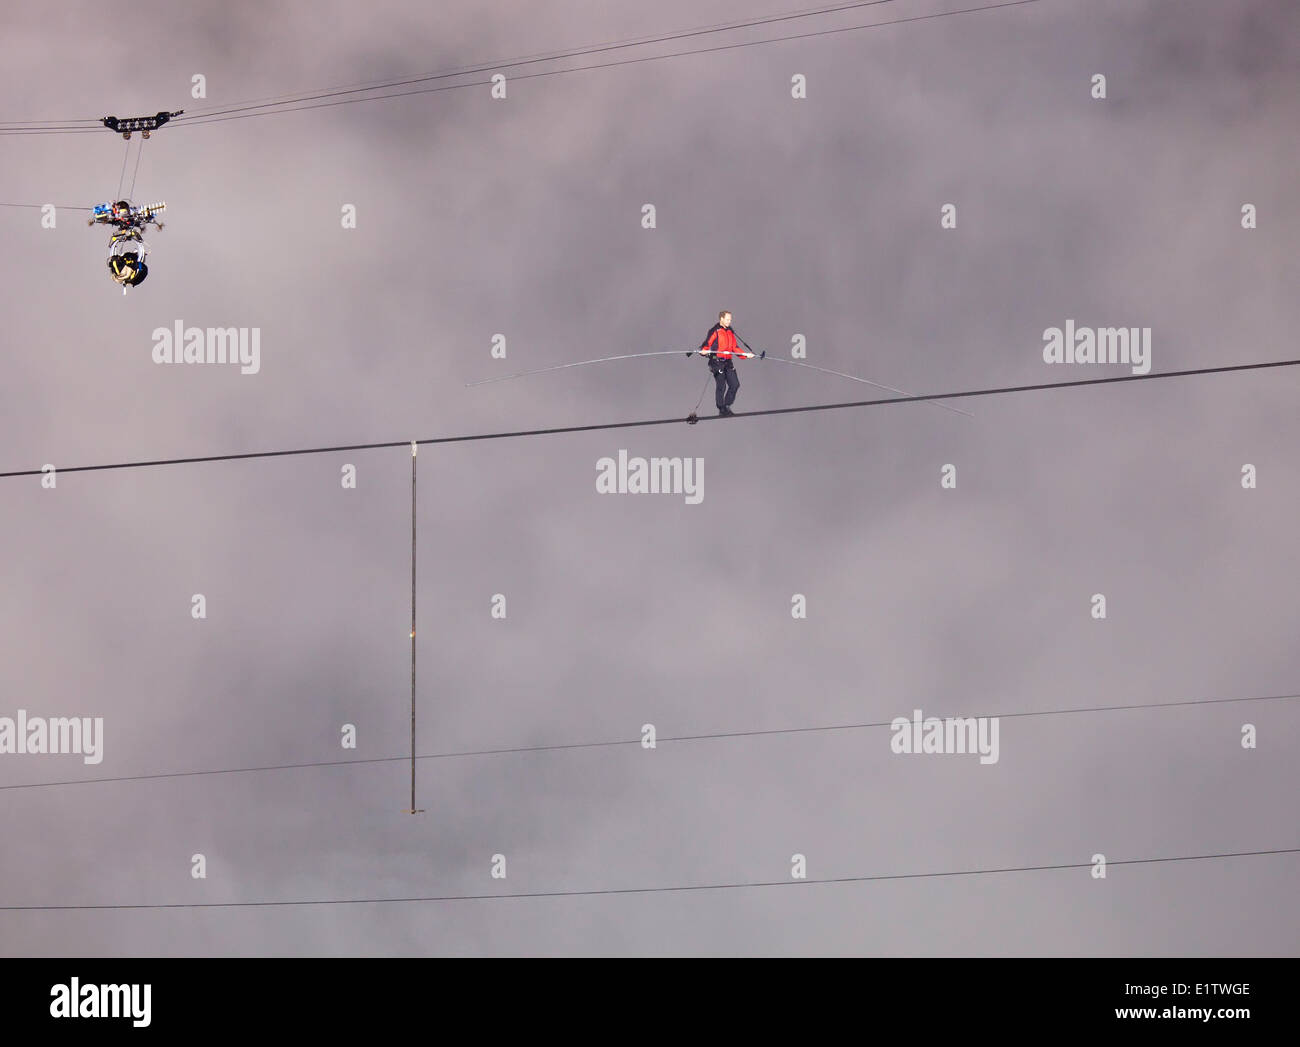 June 15 2012 Nik Wallenda Tightrope walking across Niagara Falls, Ontario, Canada - Stock Image